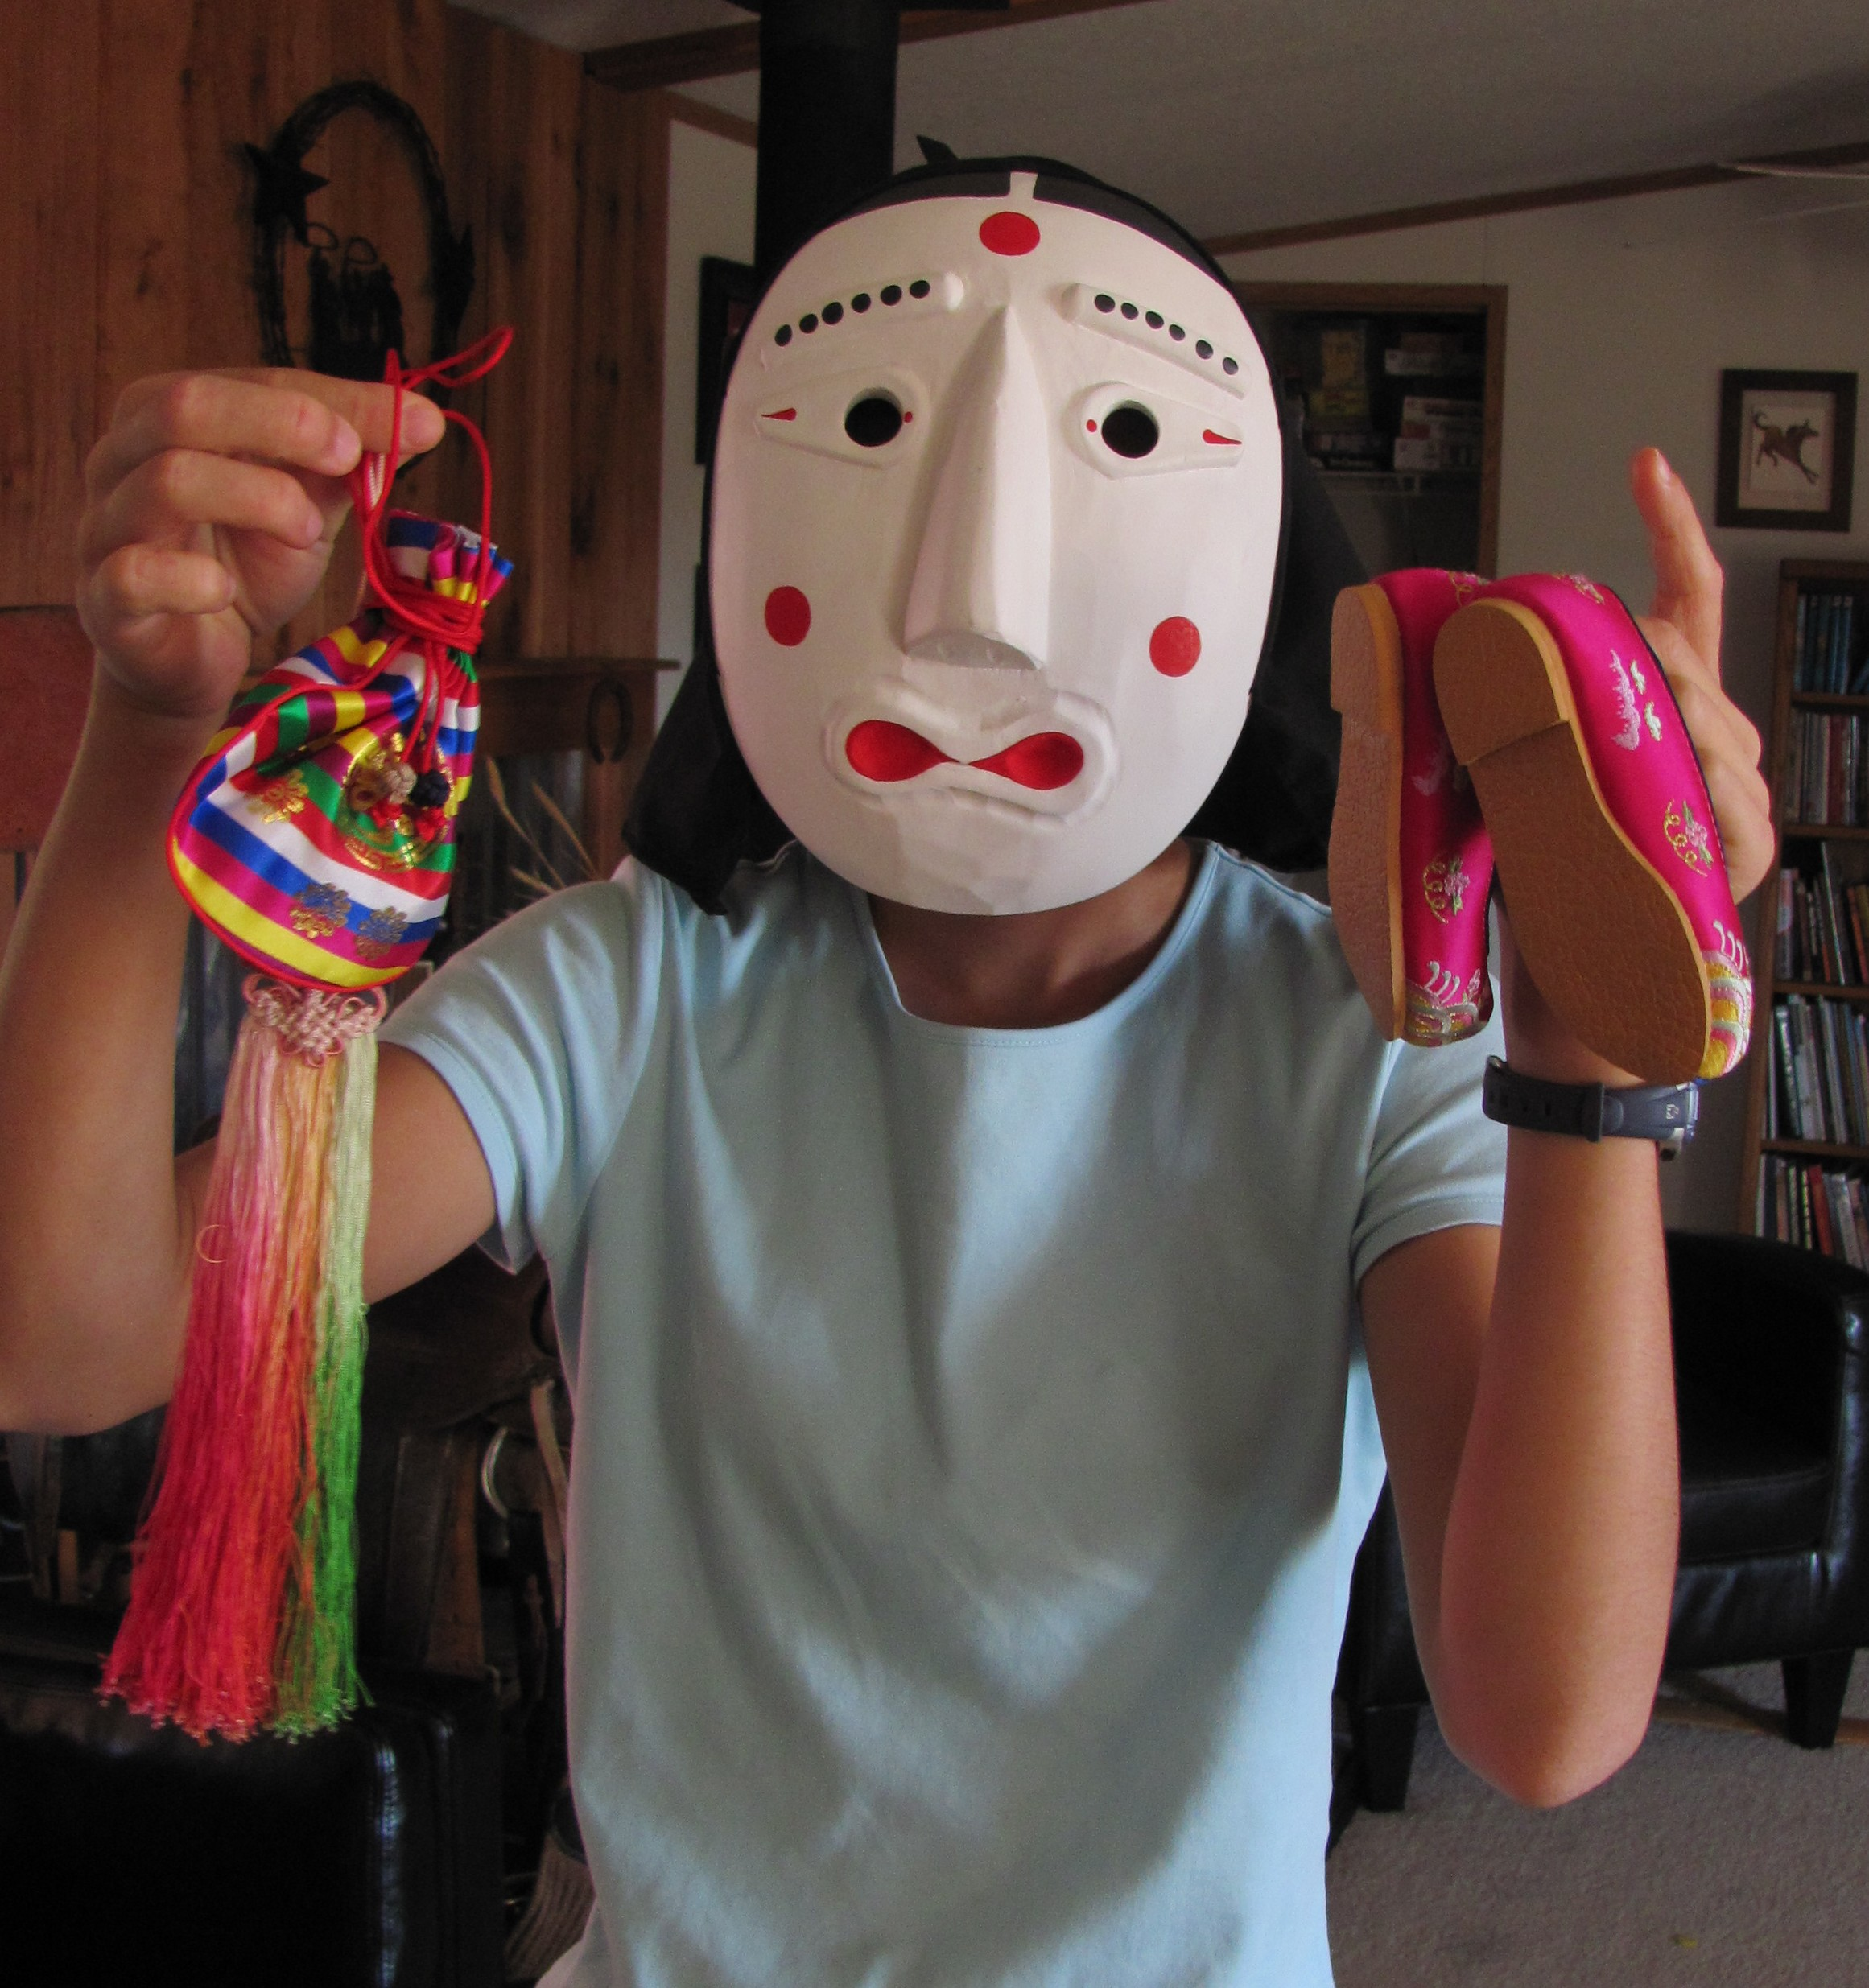 A student poses with objects from the Customs & Traditions Korea Kit